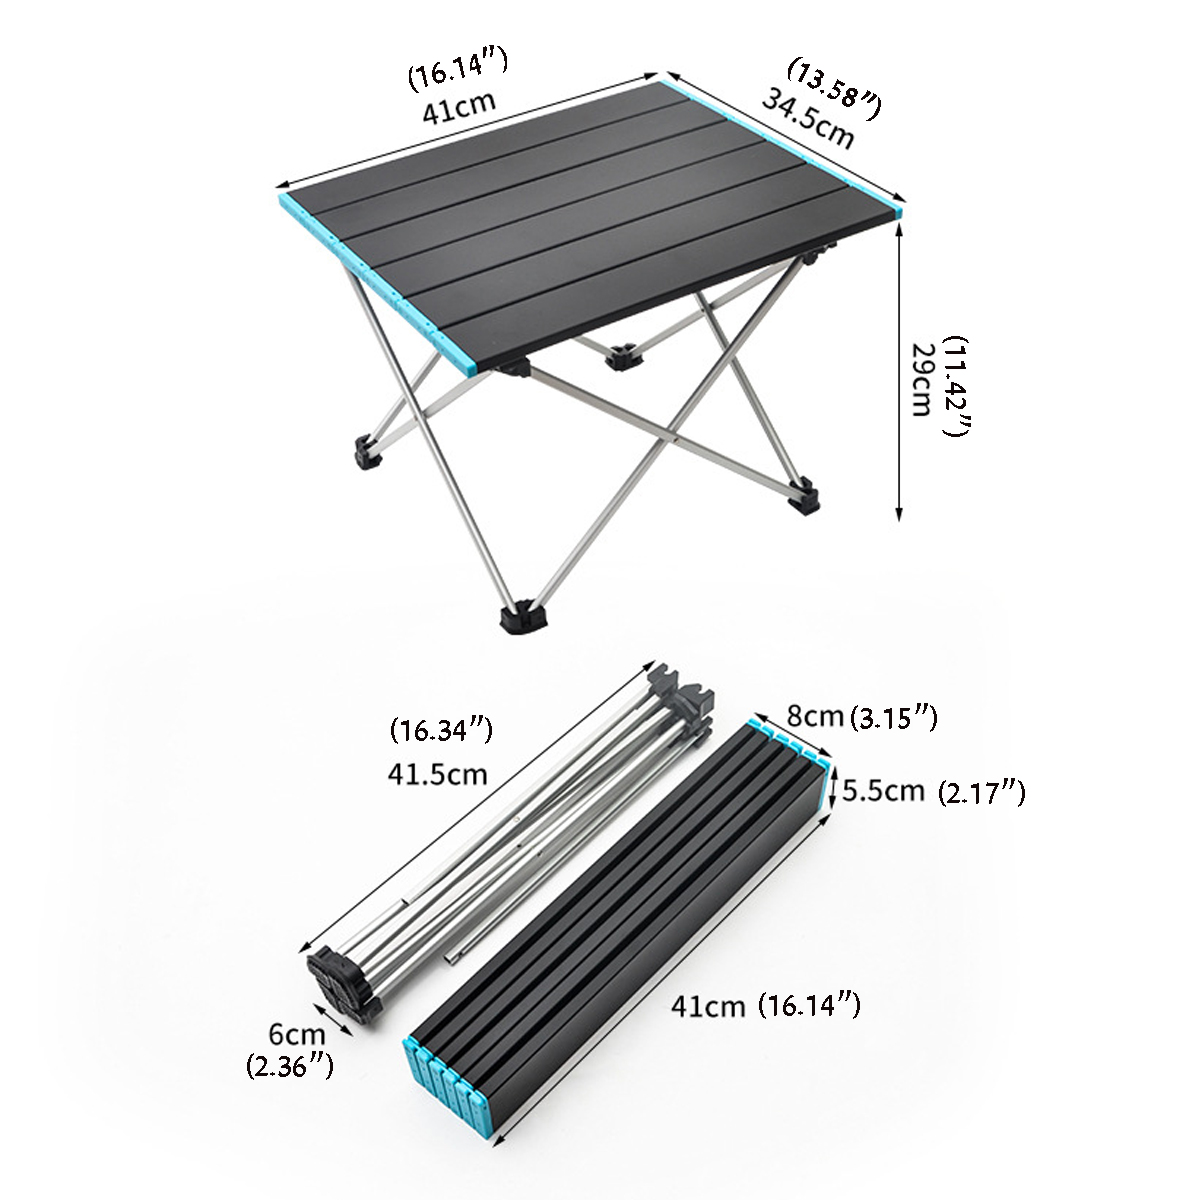 Camp Furniture for Camping Portable Camping Table With Aluminum Table Top Beach Cutting Useful For Dining Cooking With Burner Easy To Clean for Outd Hard-Topped Folding Table In A Bag For Picnic